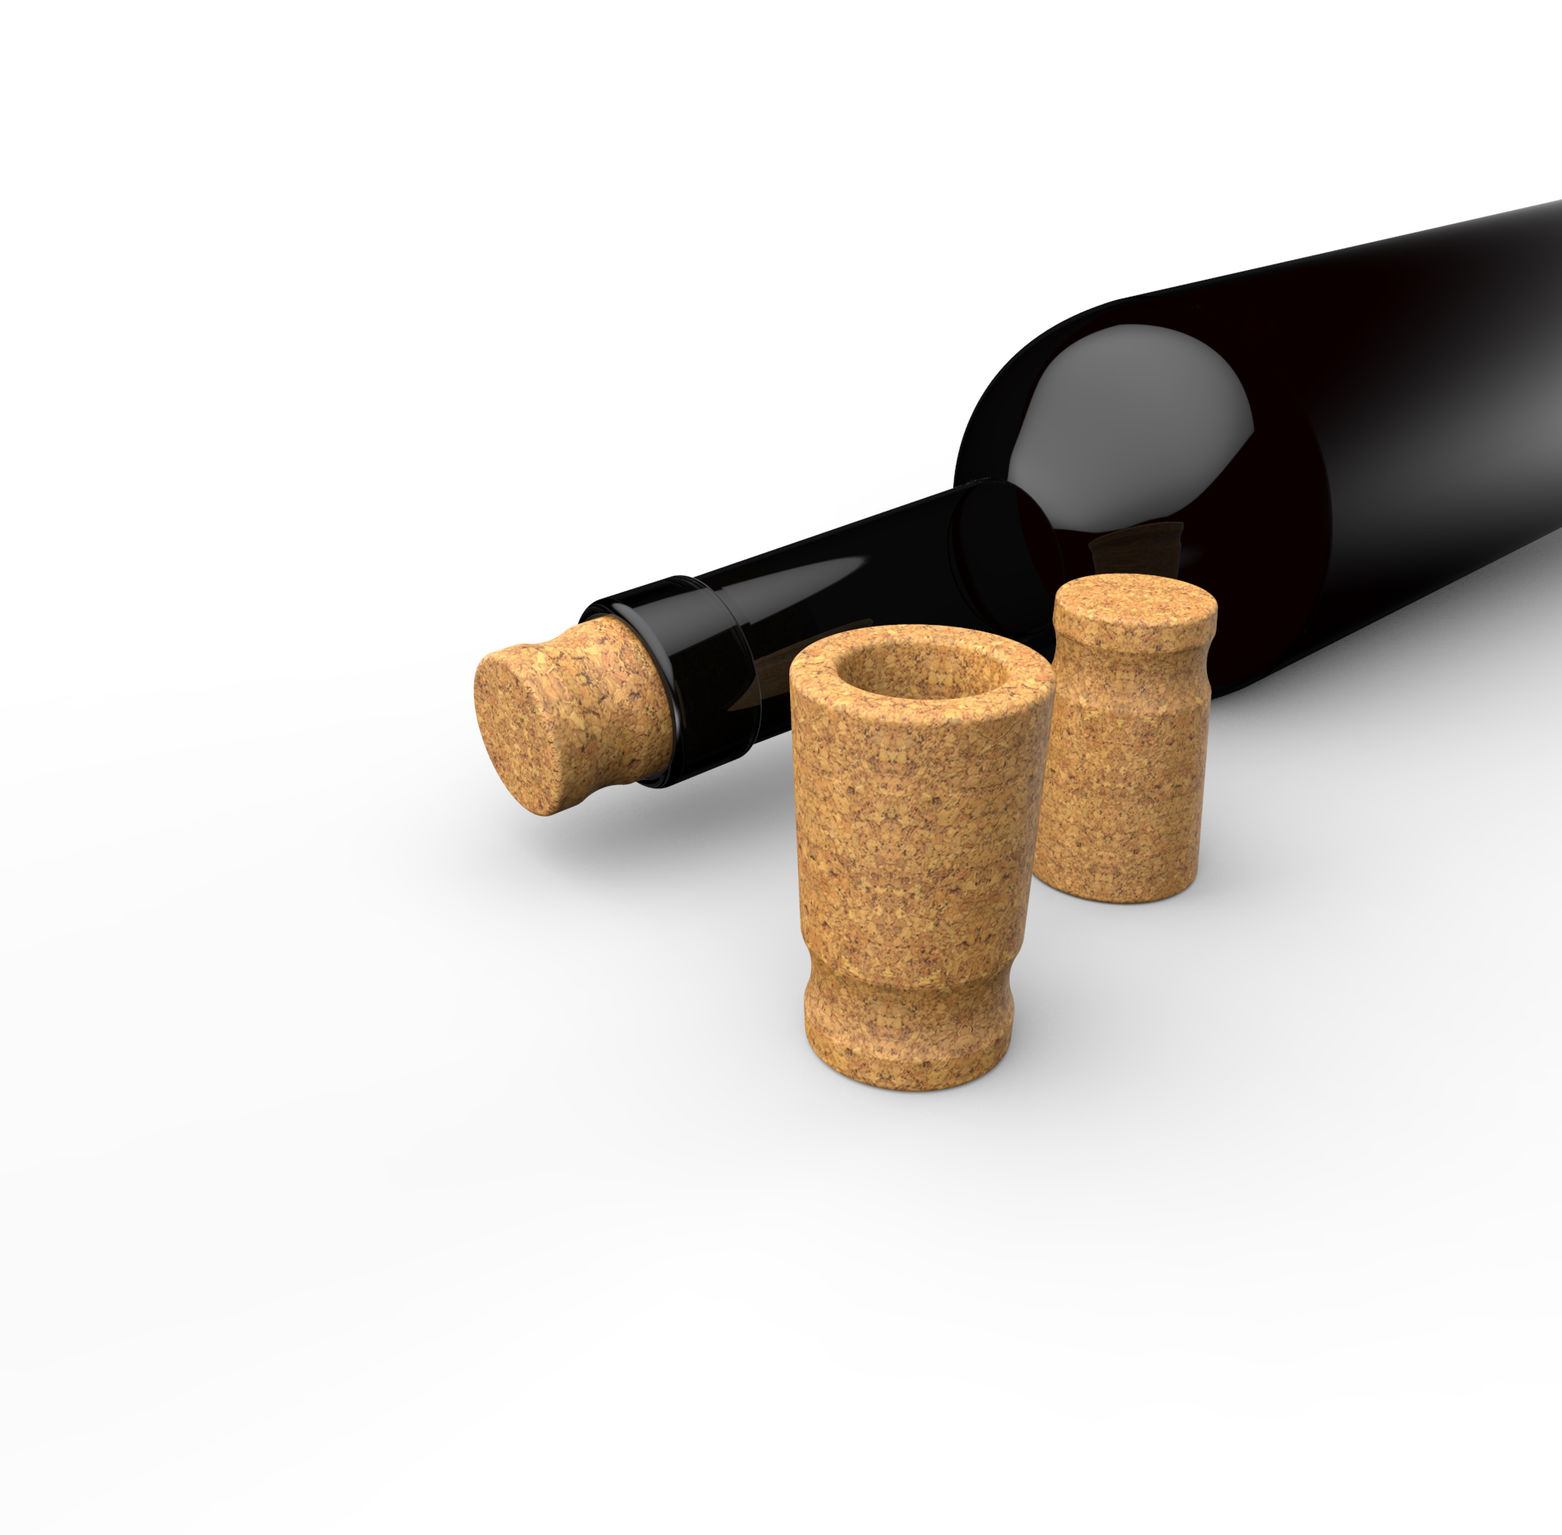 how to get cork out without opener